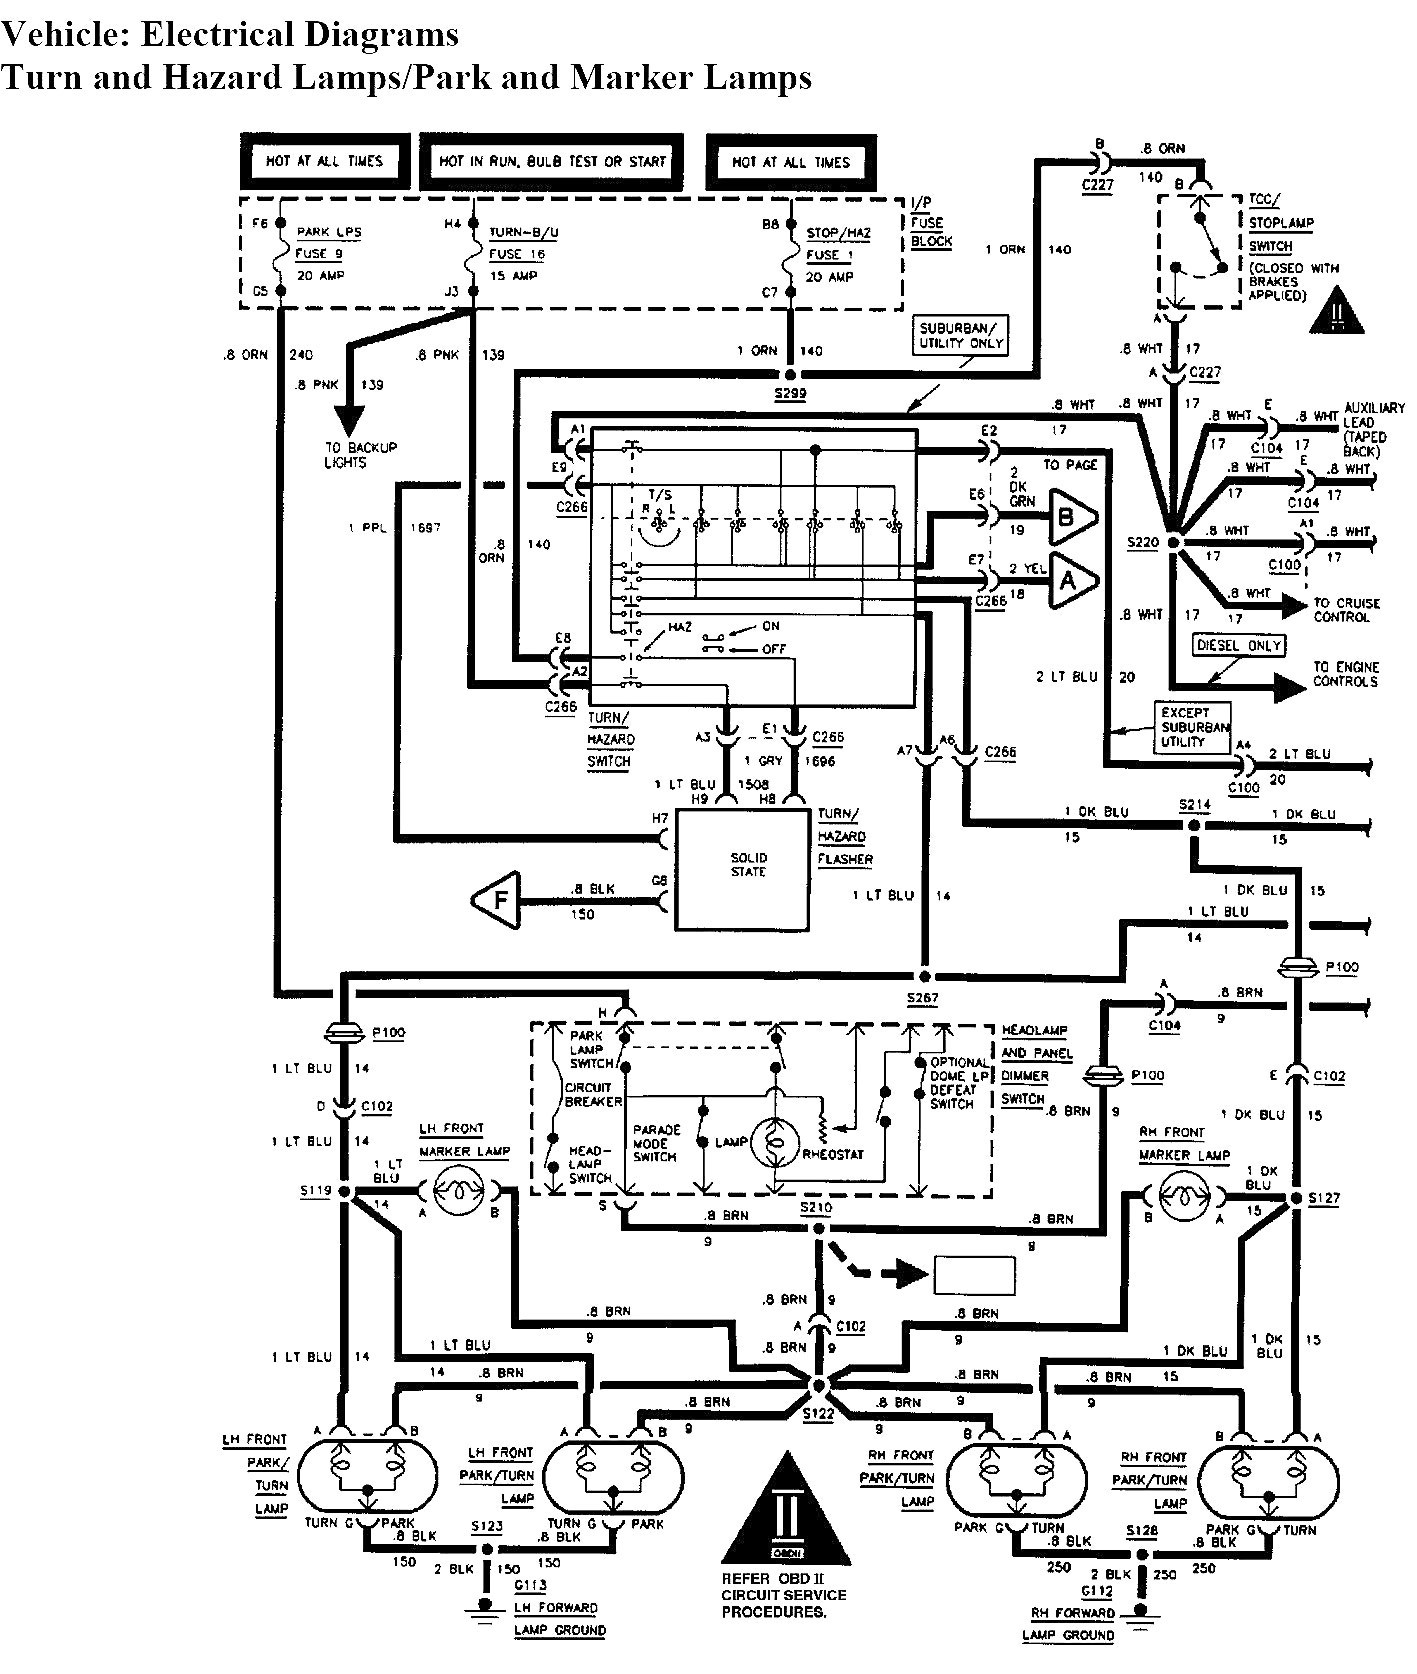 Blazer tail light wiring diagram wiring data